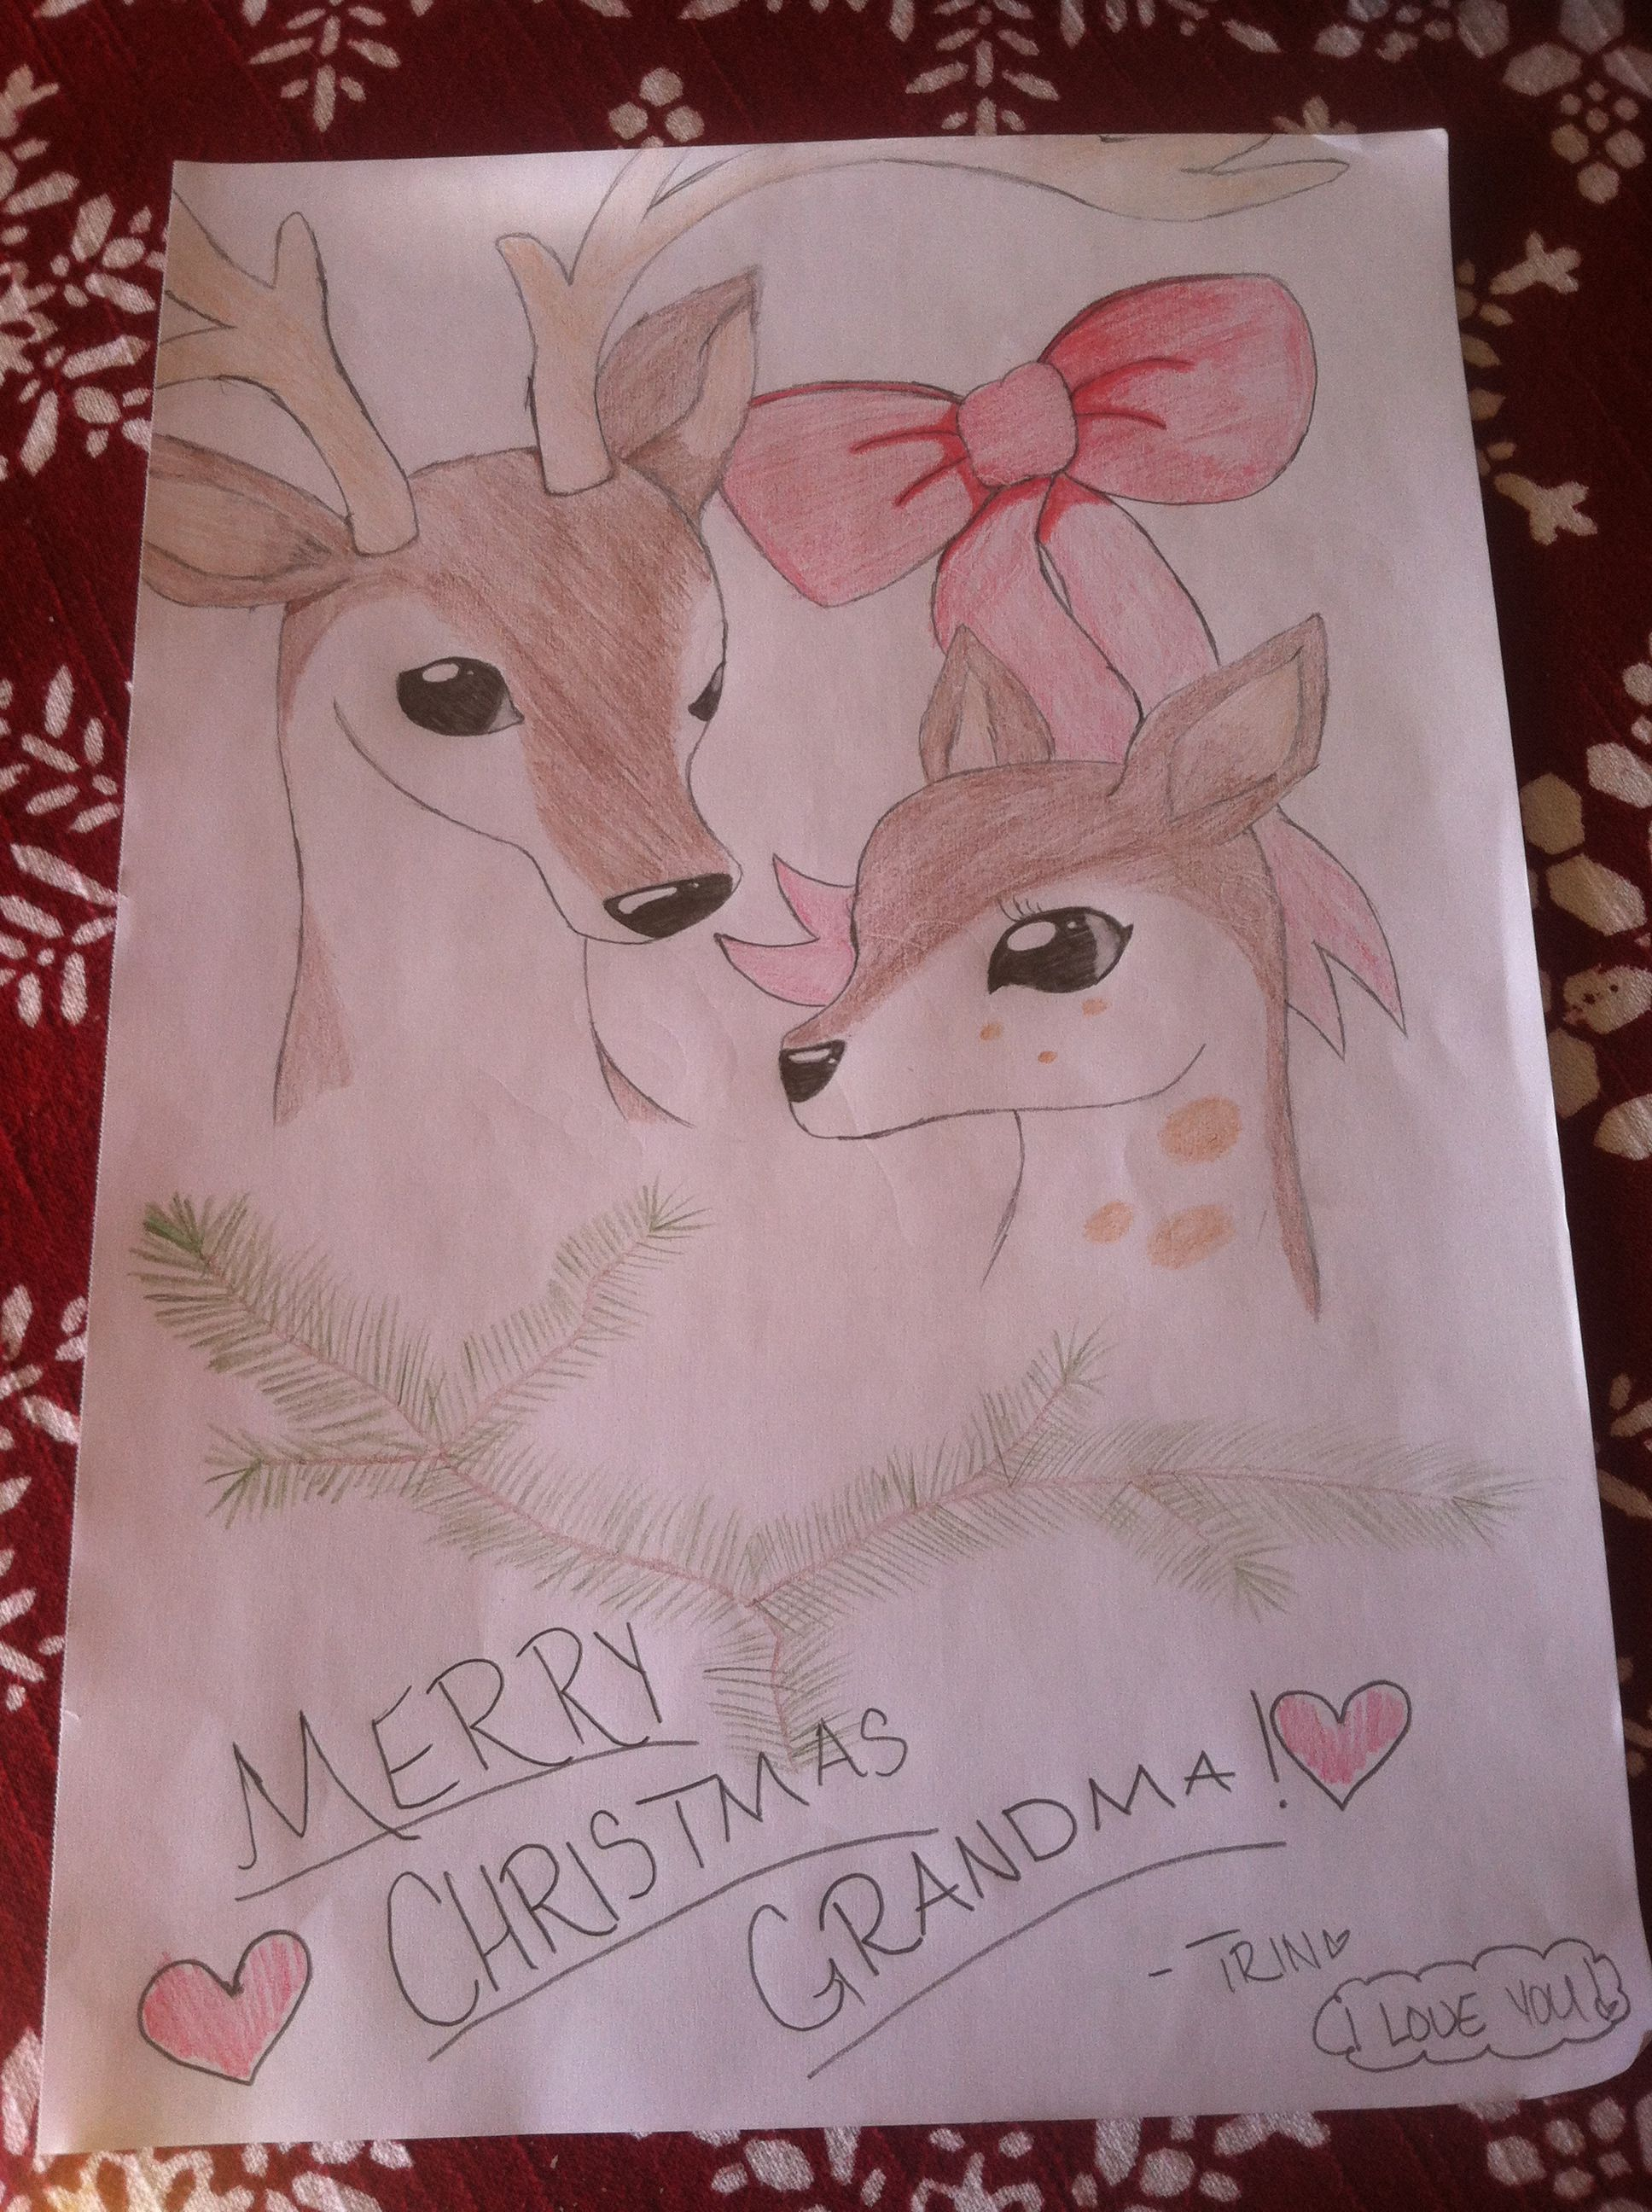 My Grandma Wanted Me To Draw Her A Picture For A Christmas Gift So